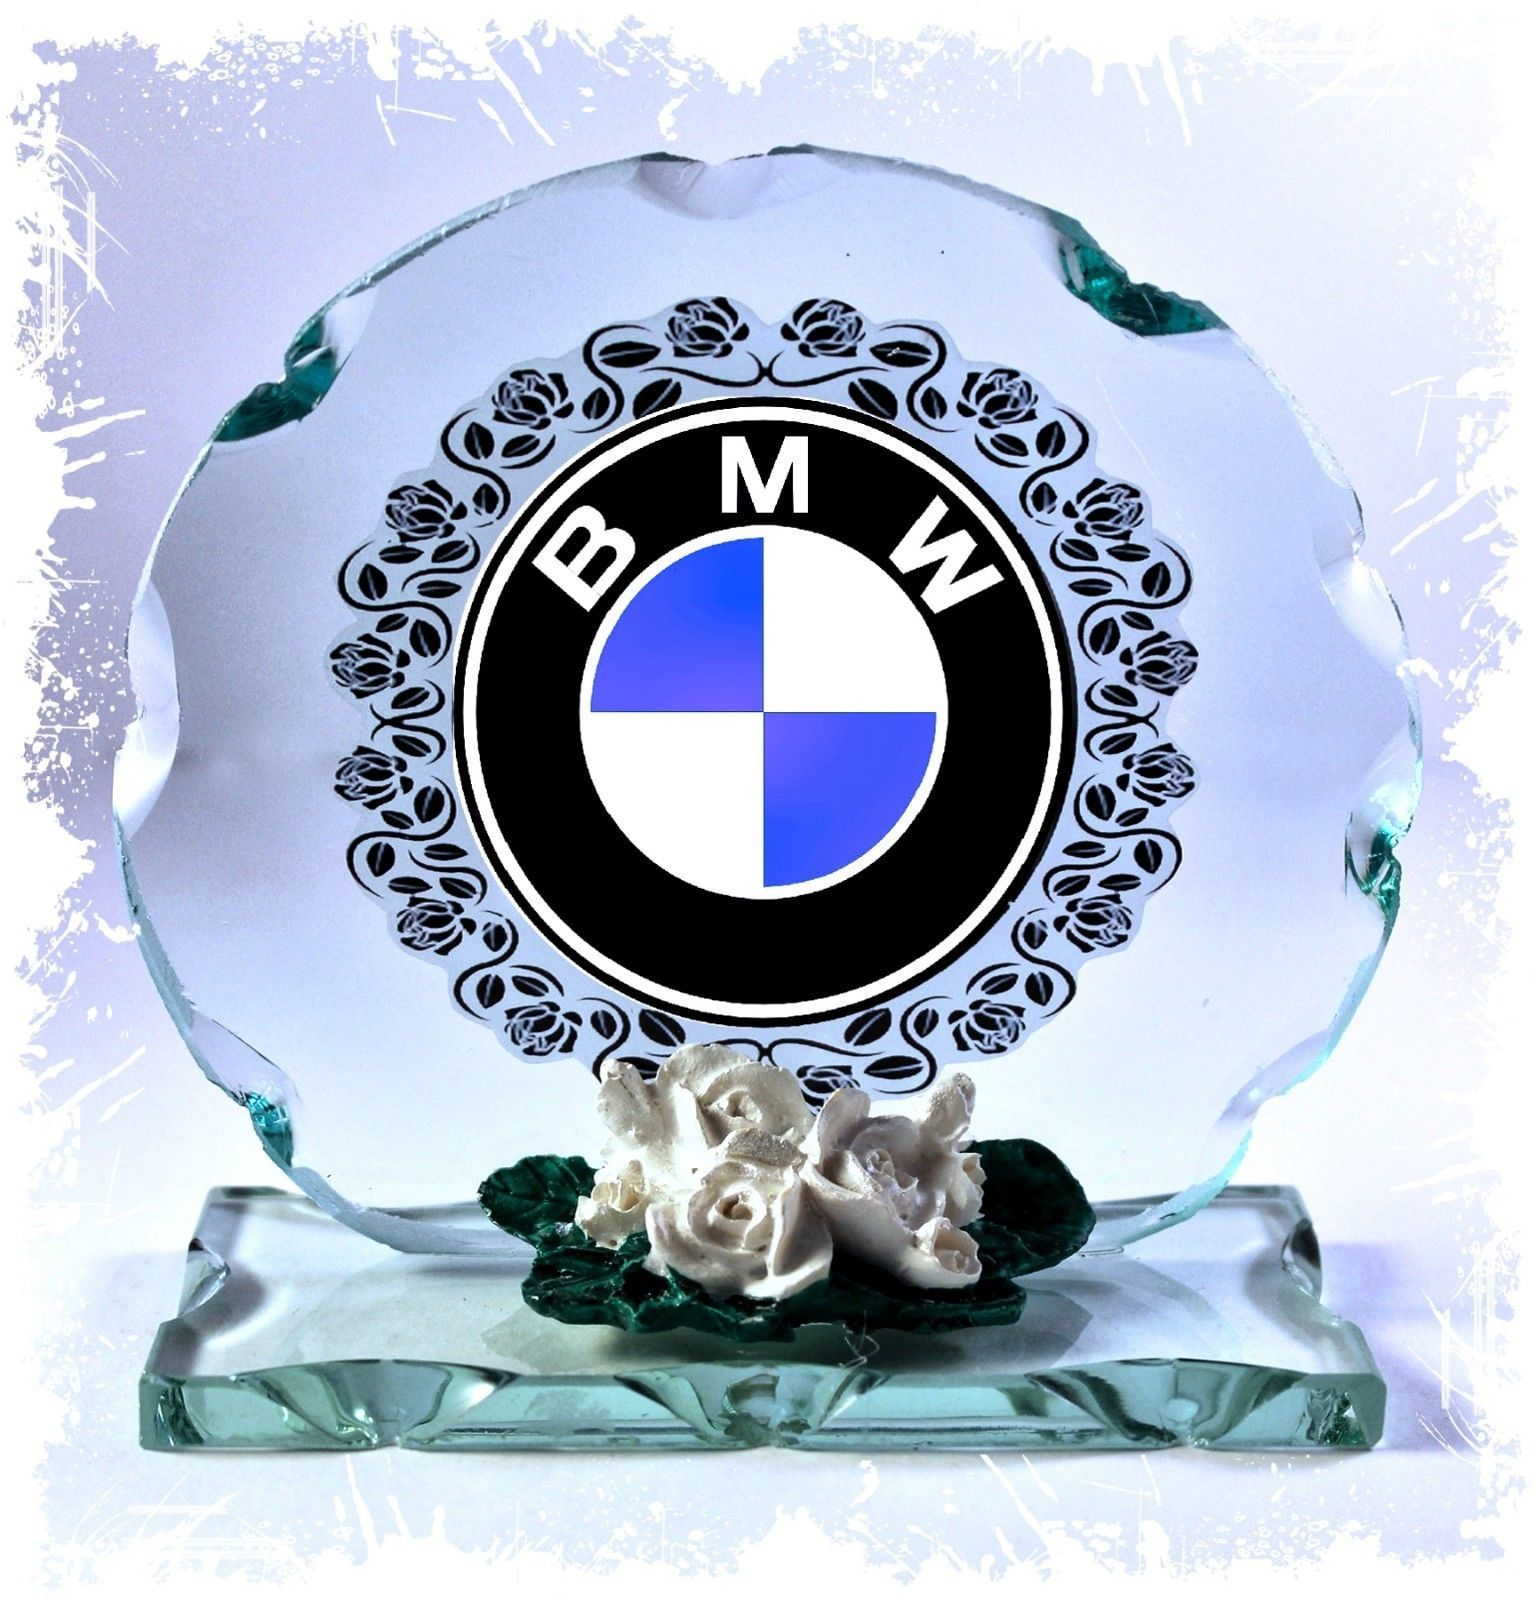 BMW LOGO Design Cut Glass Round Plaque Frame  #1